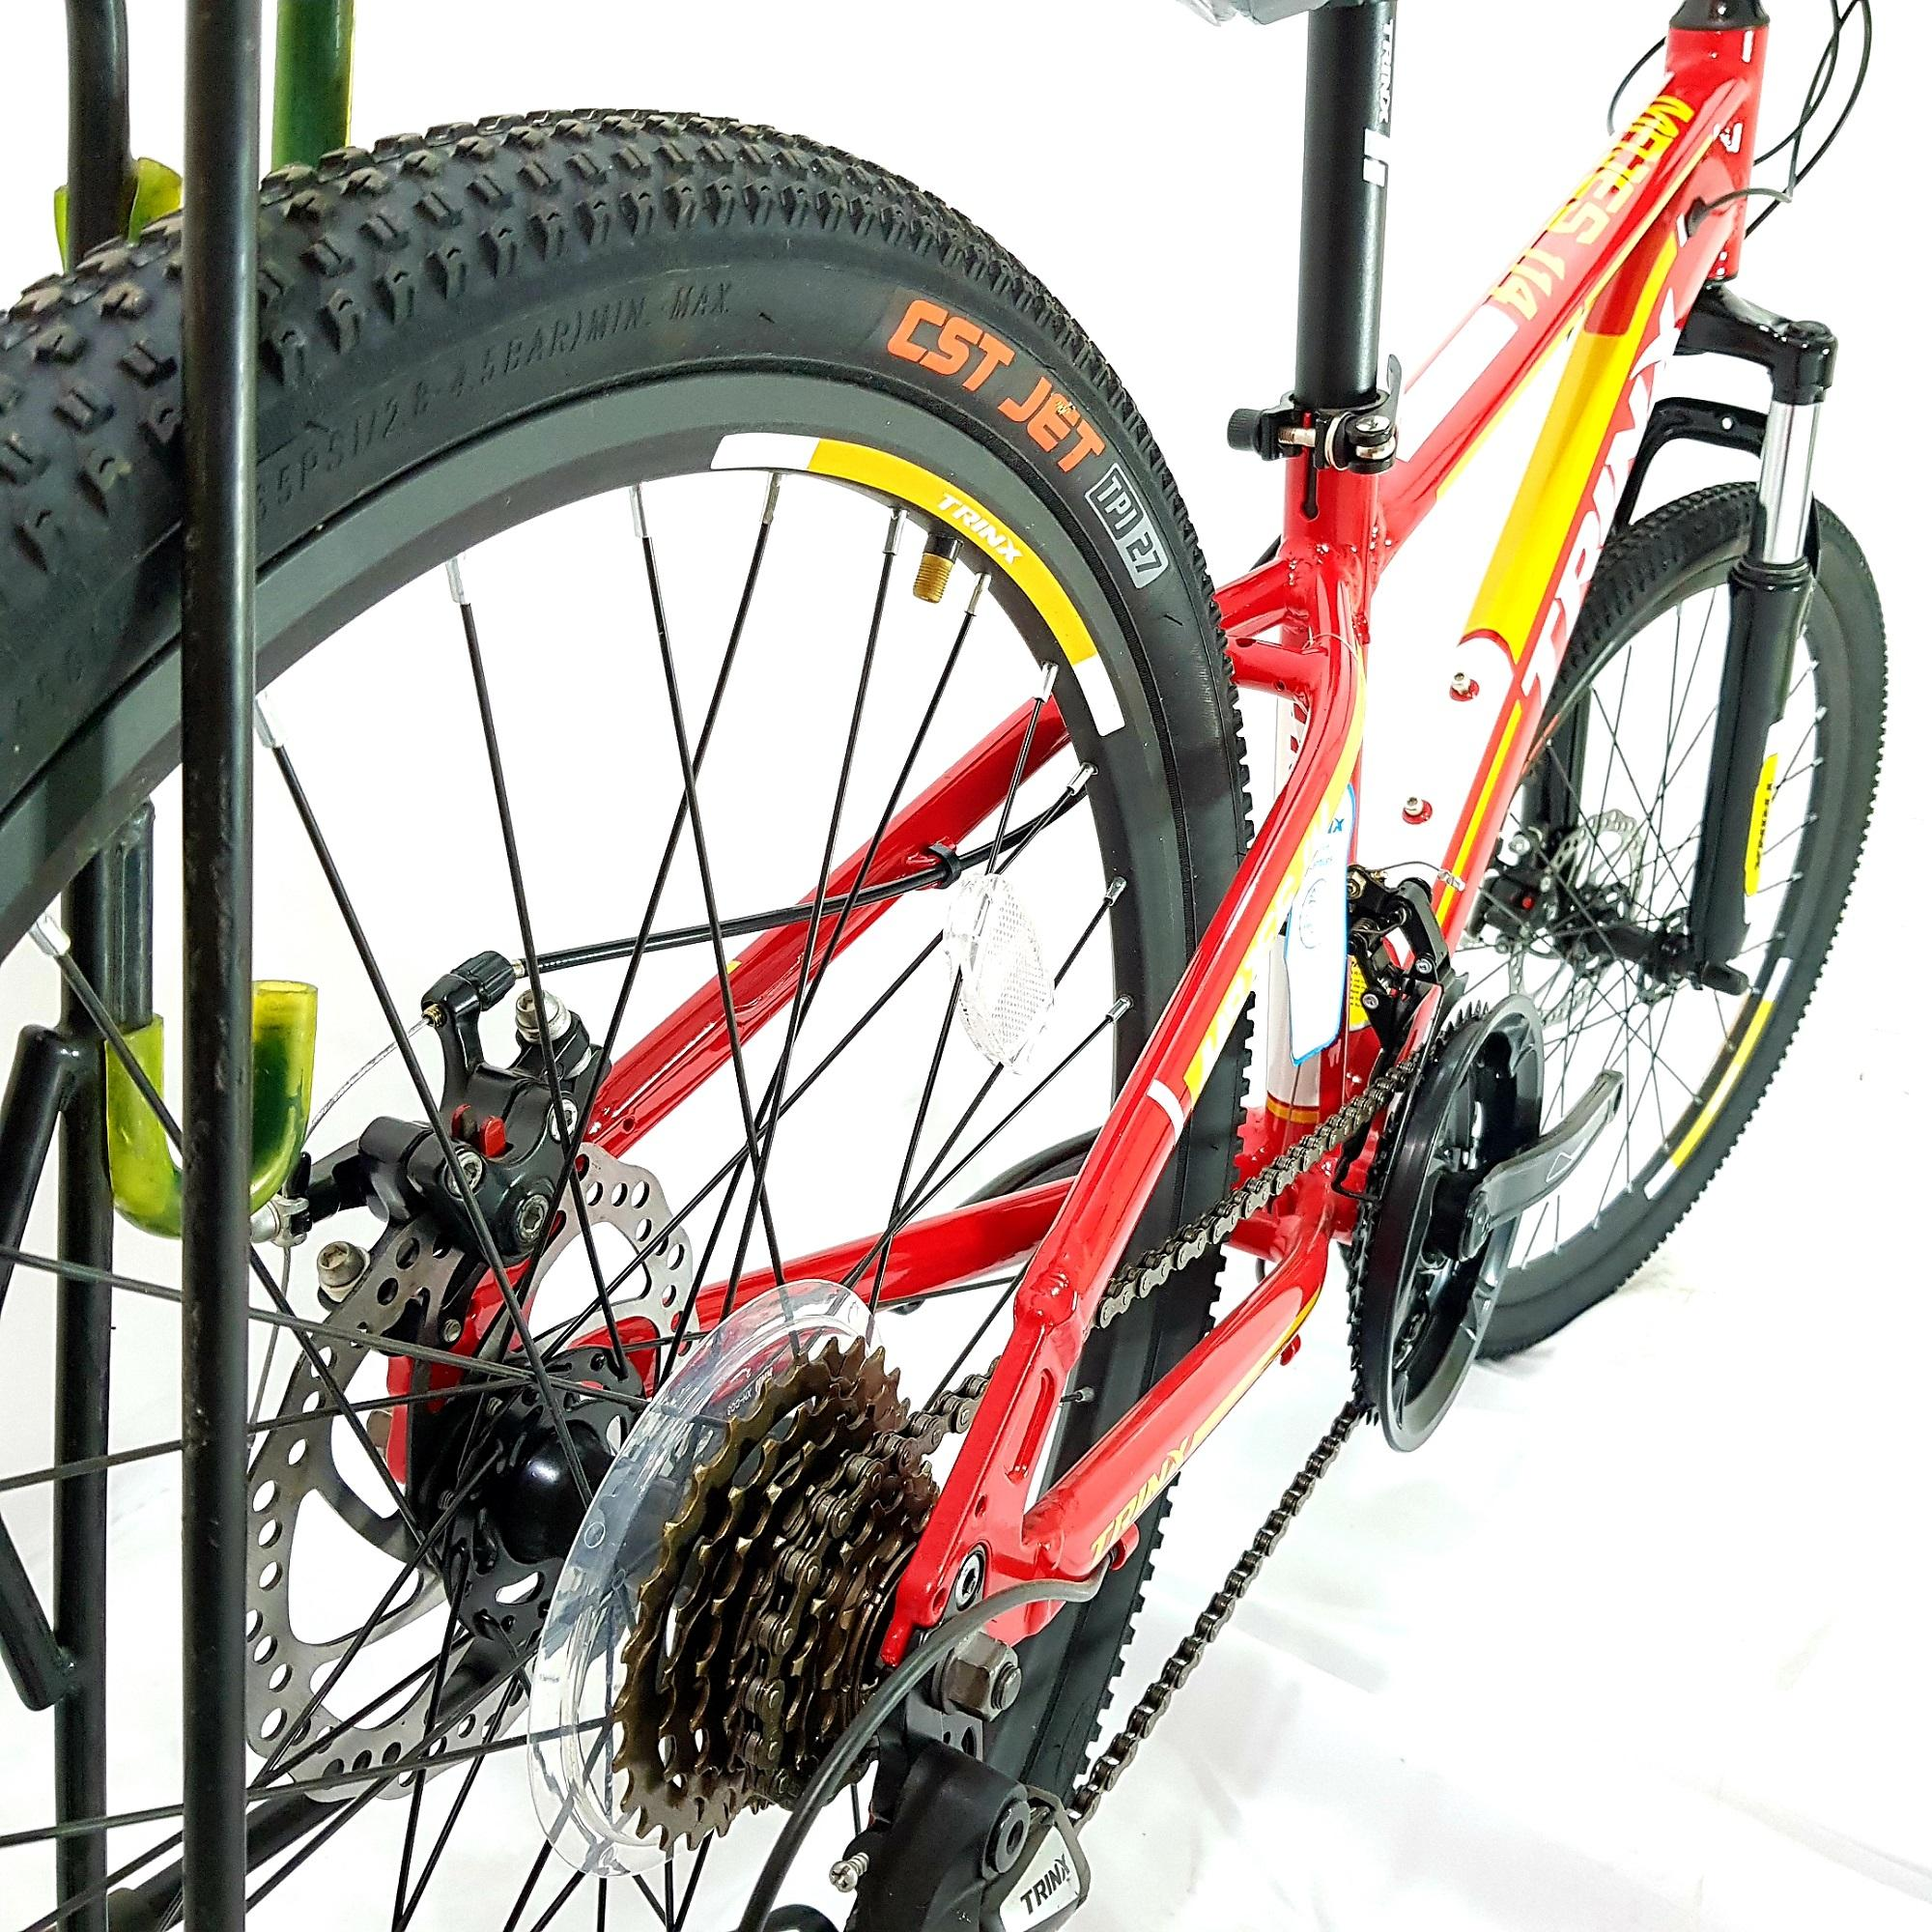 TRINX M114 24 MOUNTAIN BIKE